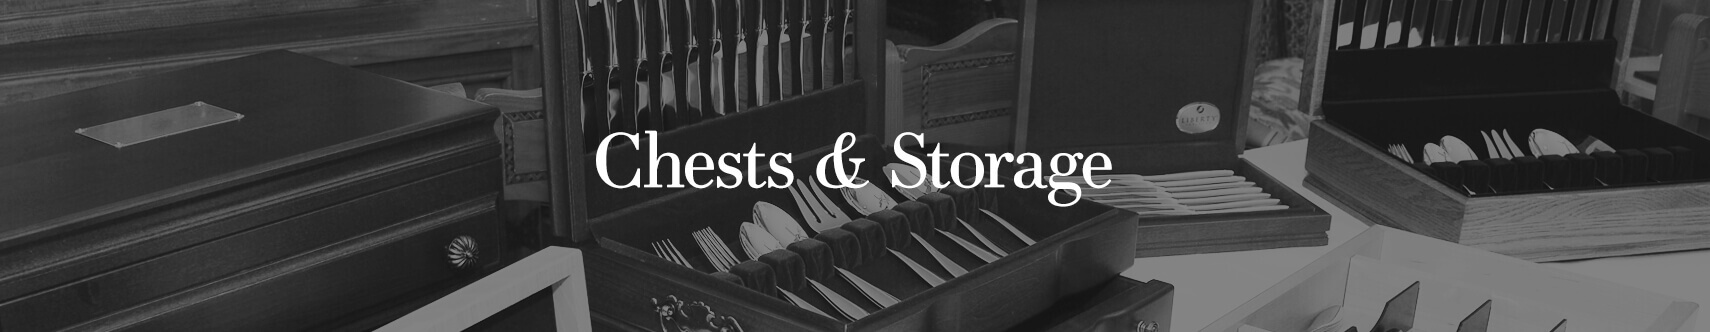 Chests & Storage